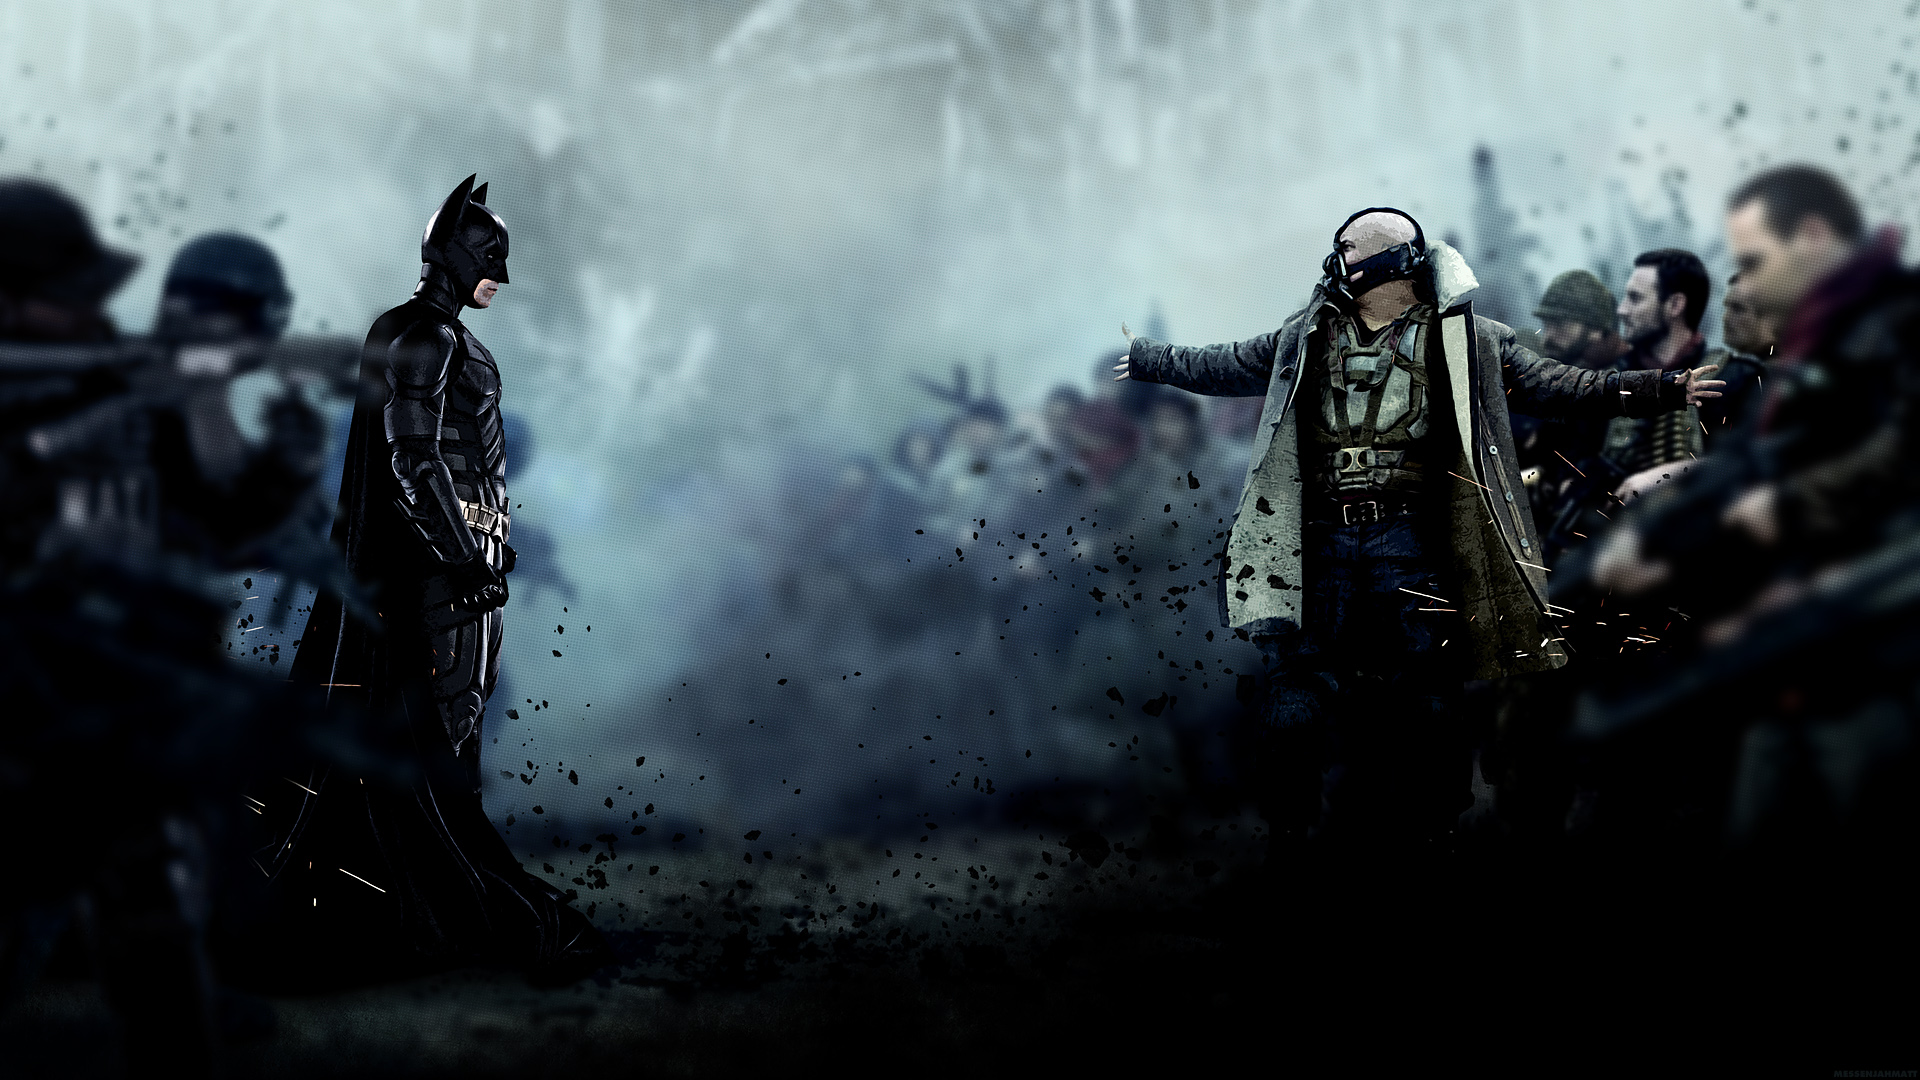 DARK KNIGHT RISES batman superhero bane hd wallpaper 1920x1080 1920x1080